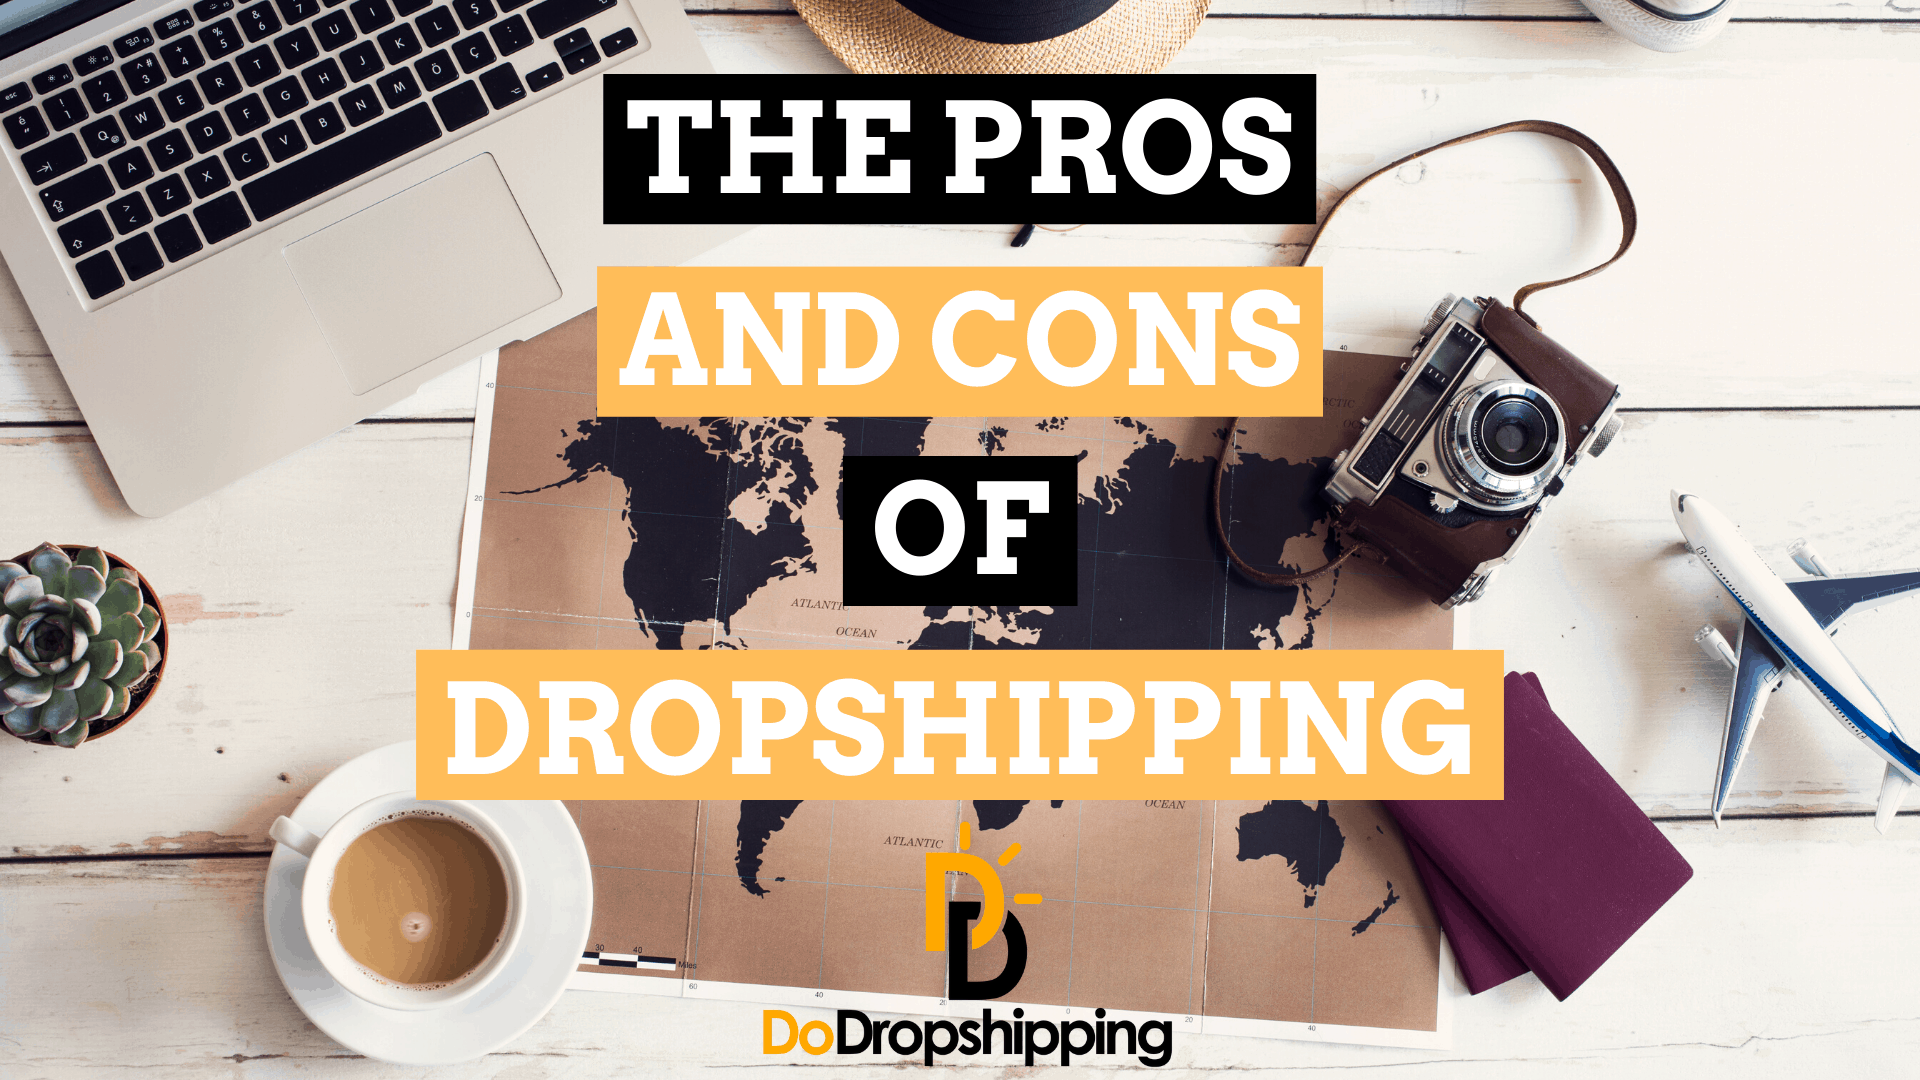 The Pros and Cons of Dropshipping in 2021 (Is It Still Good?)